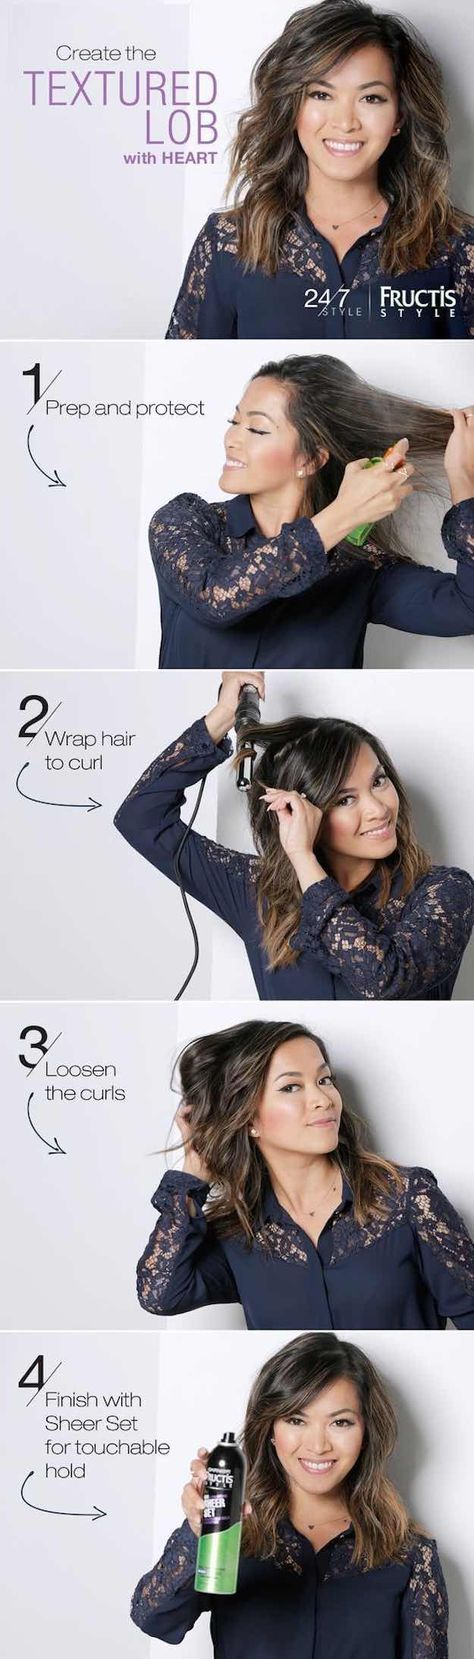 41 Lob Haircut Ideas For Women - TEXTURED LOB HAIRSTYLE TUTORIAL WITH HEART DEFENSOR | 24/7 STYLE -What is a lob? Step by step easy tutorials on how to cut your hair for a lob haircut and amazing ideas for layered, and straight lobs. Ideas for lobs with bangs, thick hair, wavy and thin hair. For long hair and medium hair. For round faces and sharp features - thegoddess.com/lob-haircut-ideas-women